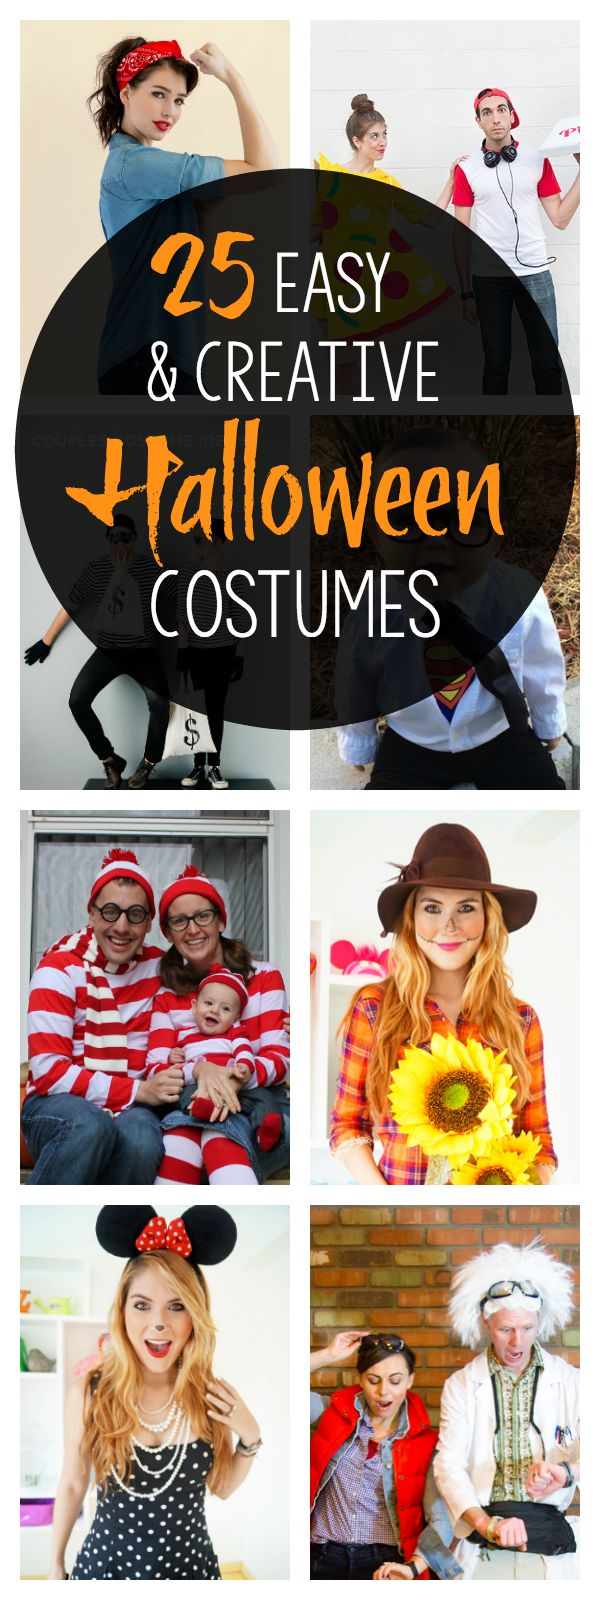 Coming up with Halloween party costumes for everyone in the family can be hard-so we've gathered some quick & easy (but still creative) ideas for everyone.